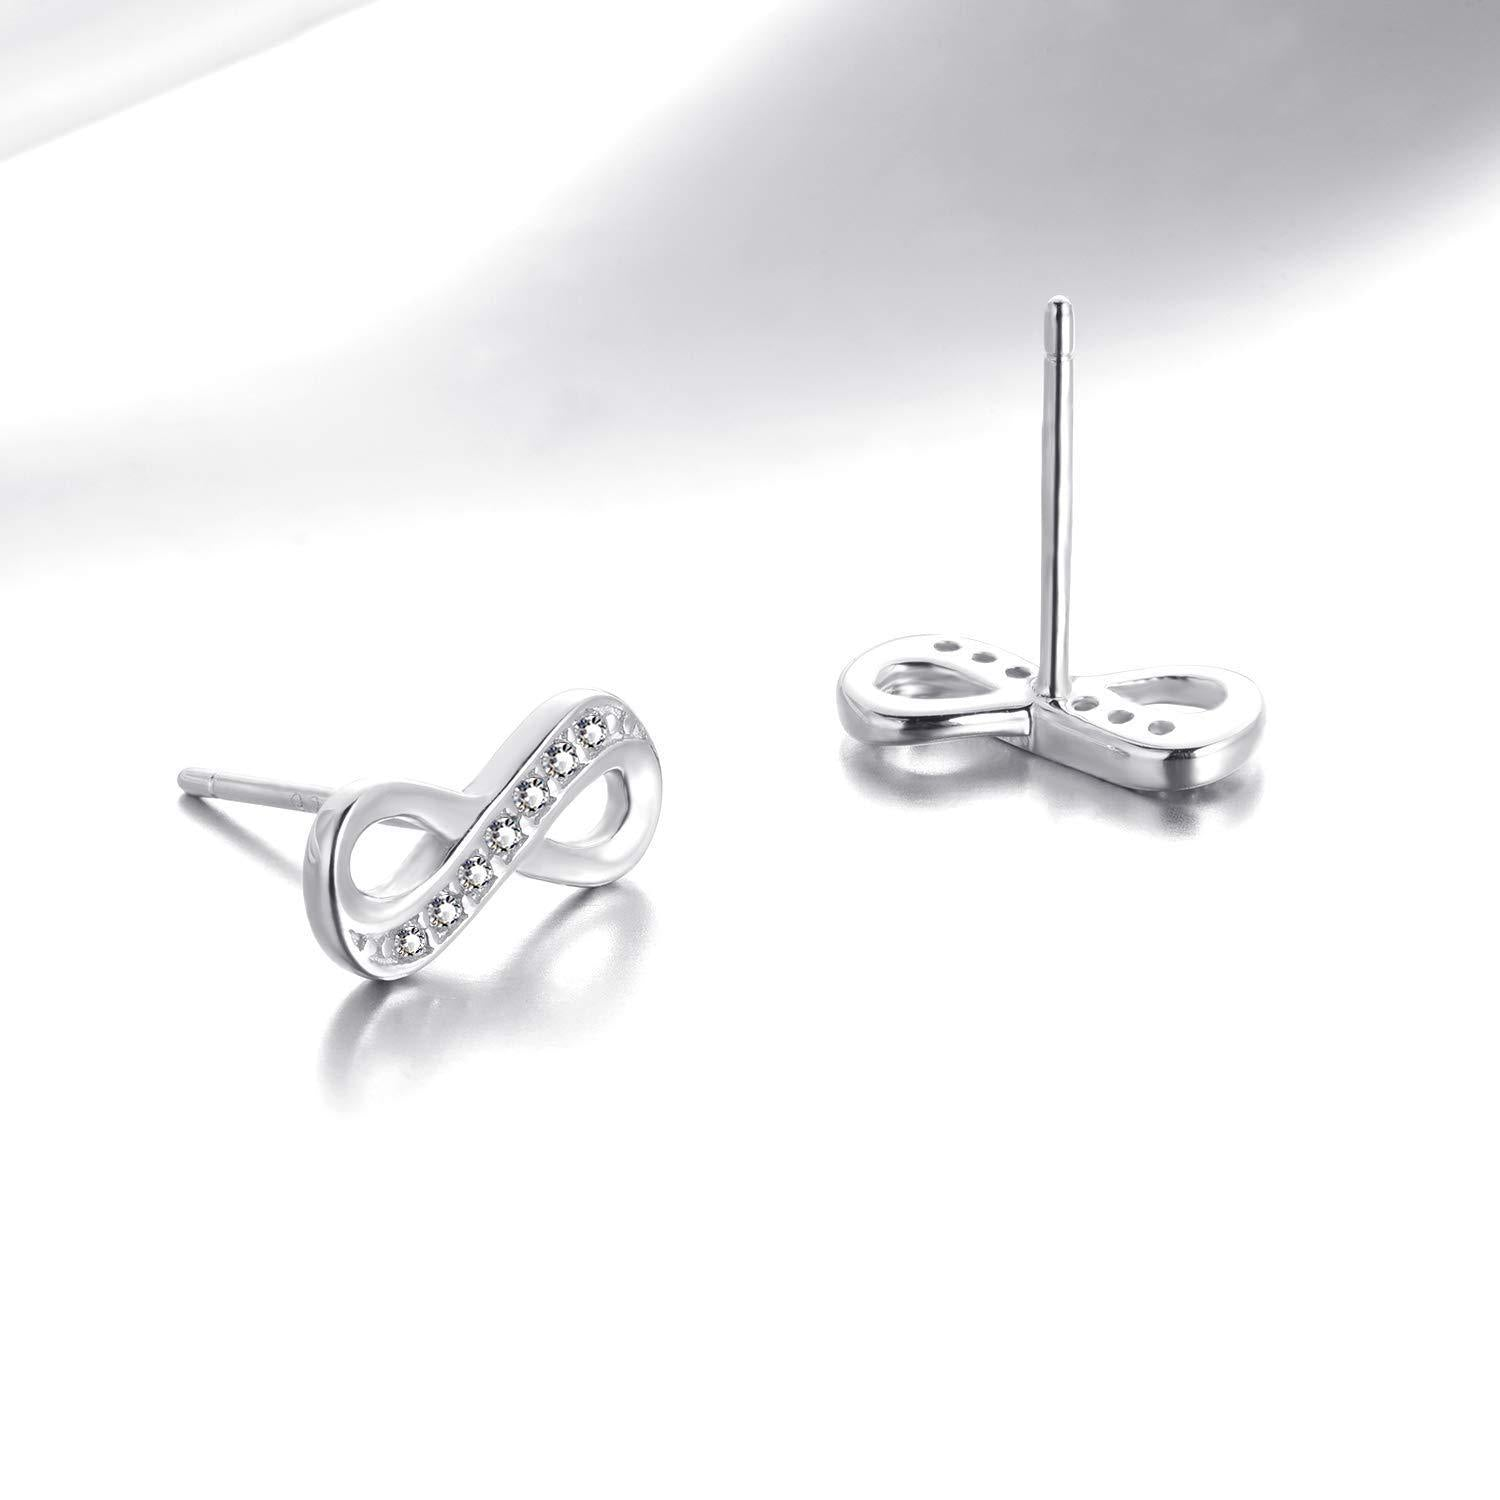 S925 Sterling Silver Fashion Personality Micro-Inlay 8 Word Earrings Jewelry Cross-Border Exclusive